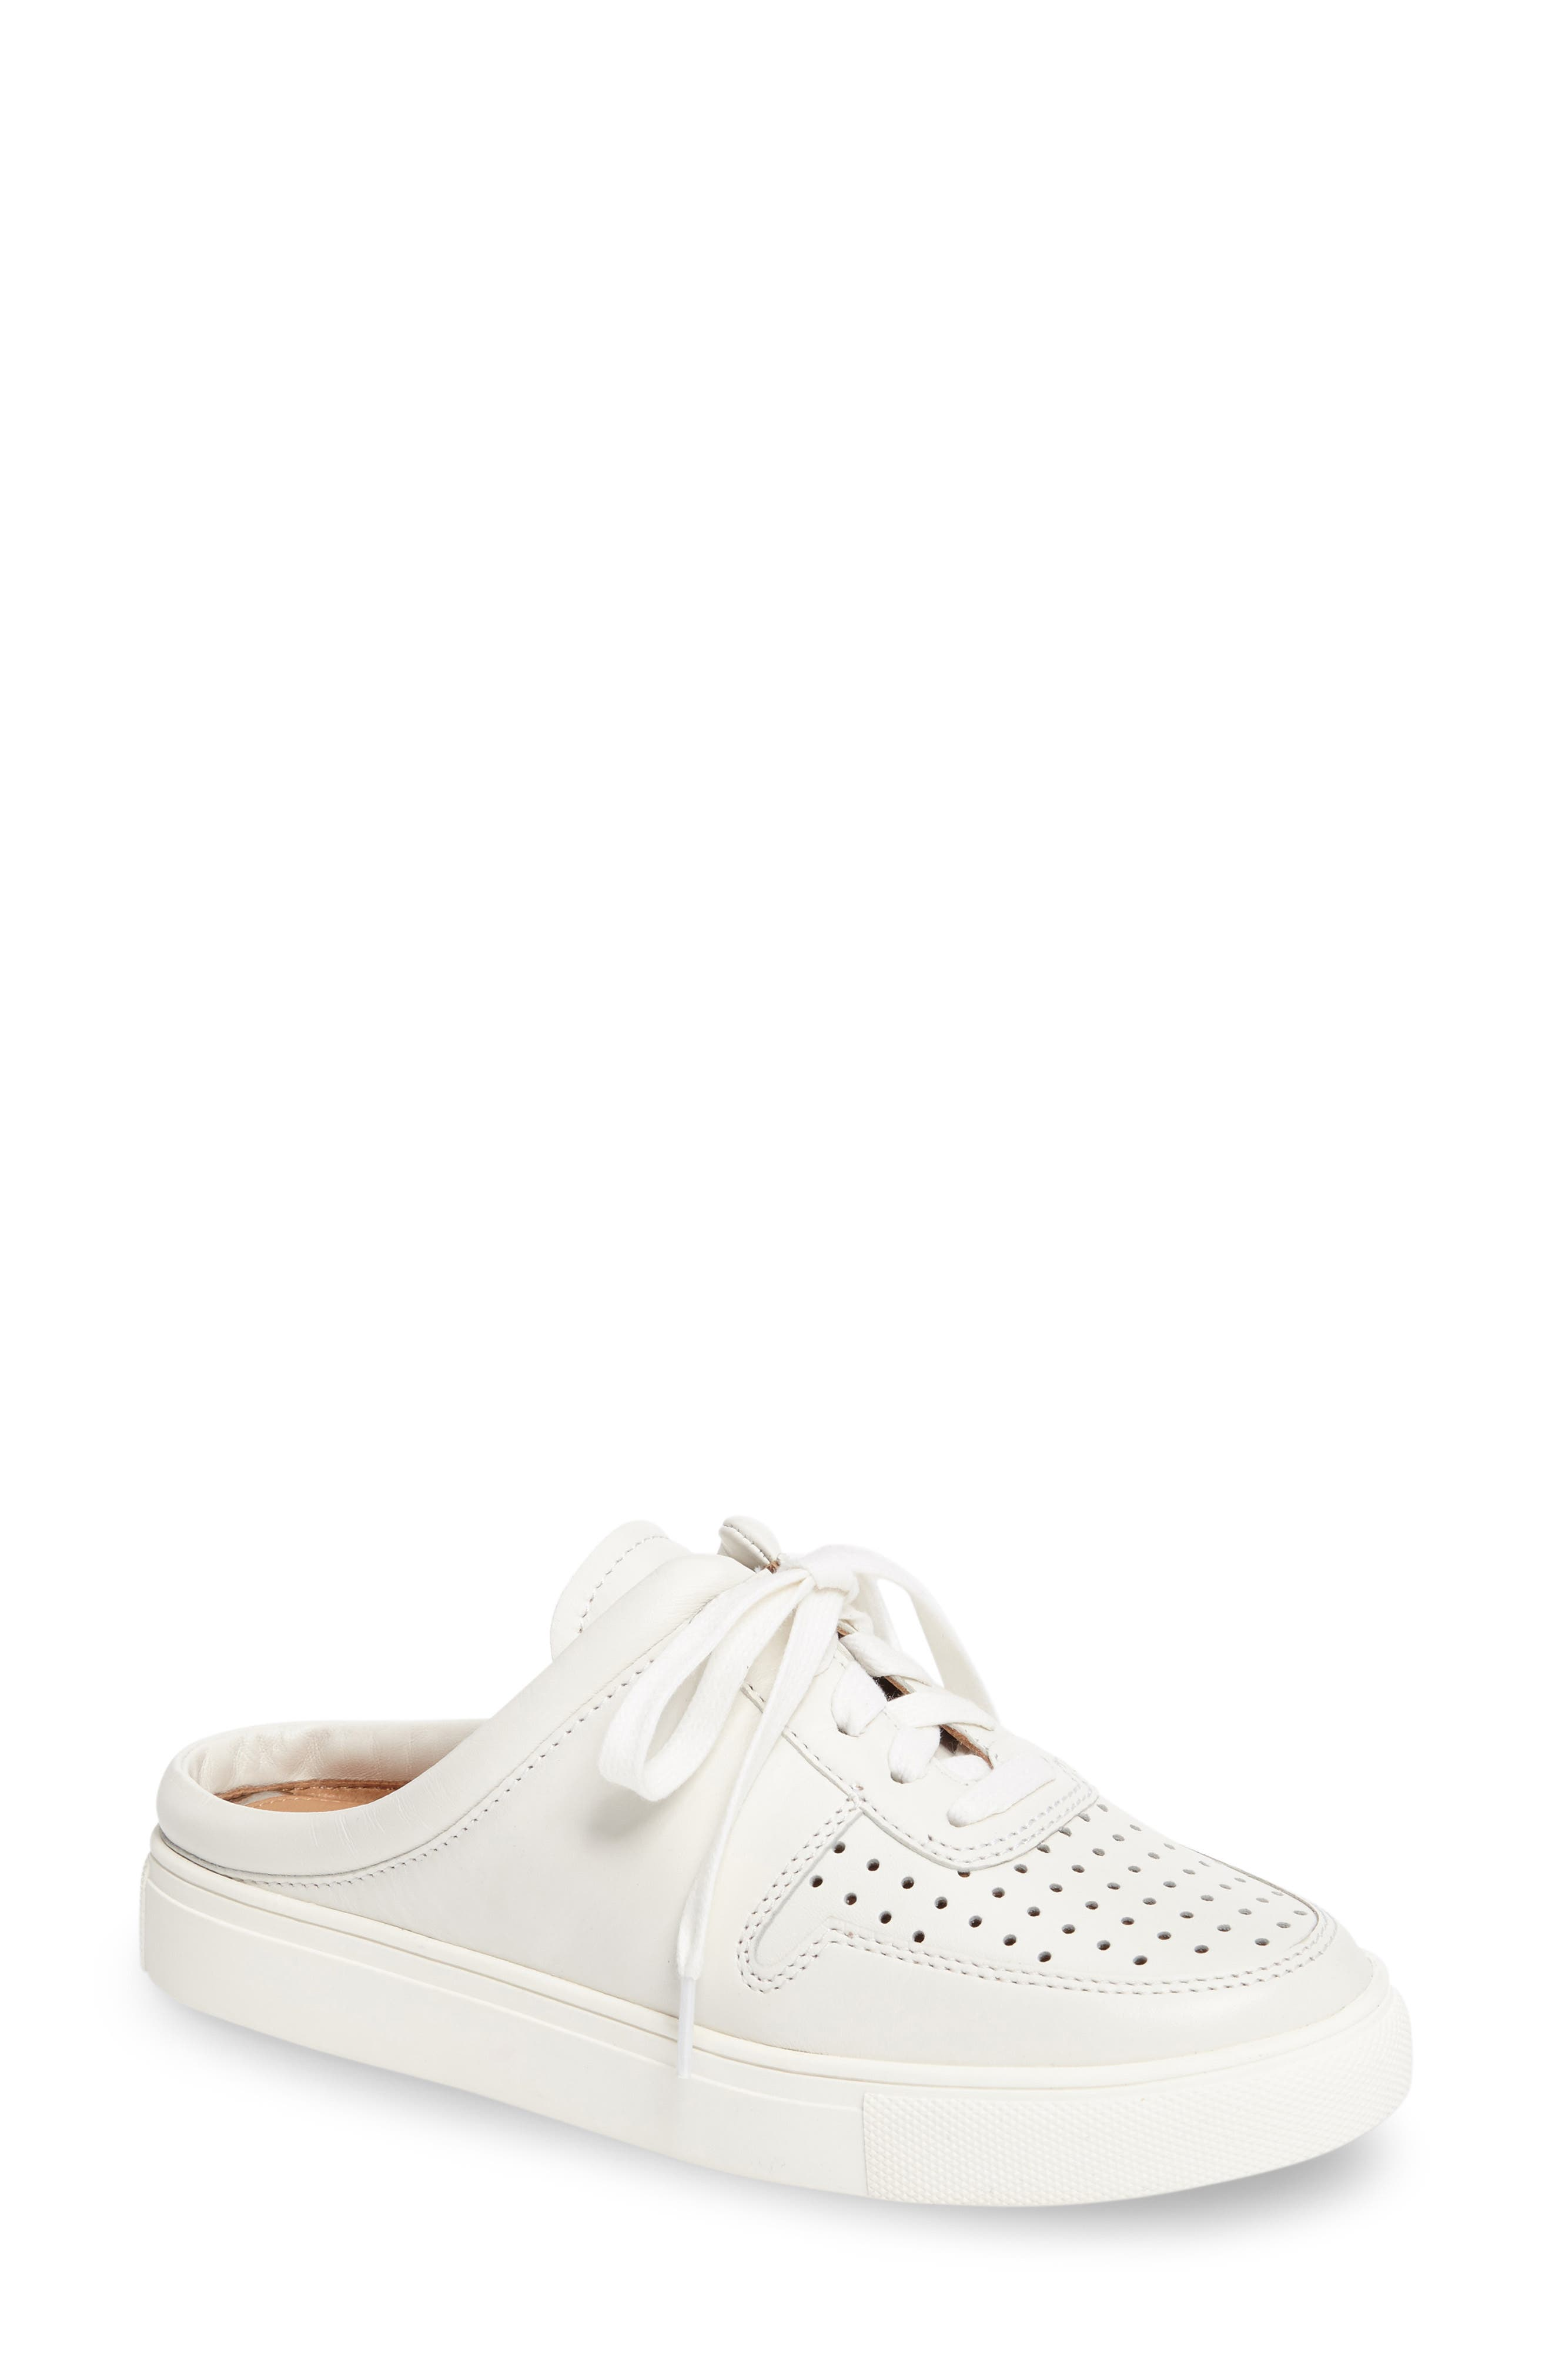 Kacy Perforated Slide Sneaker,                         Main,                         color, White Leather